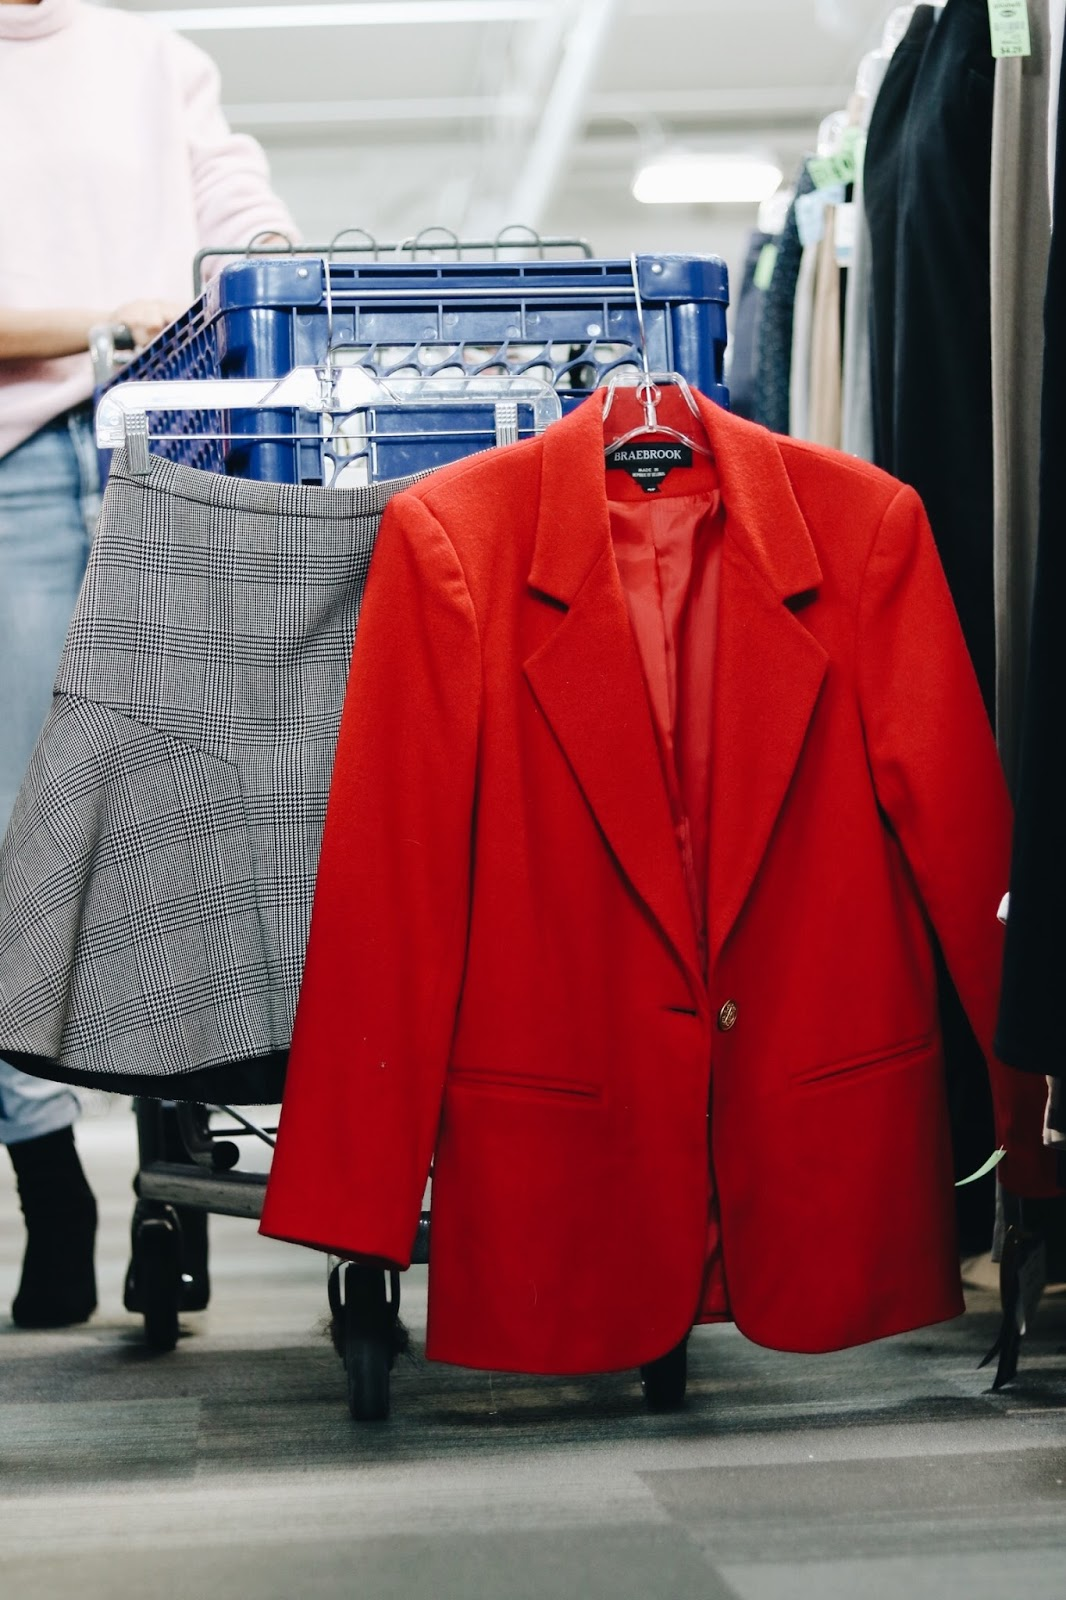 How to Thrift Shop at Goodwill